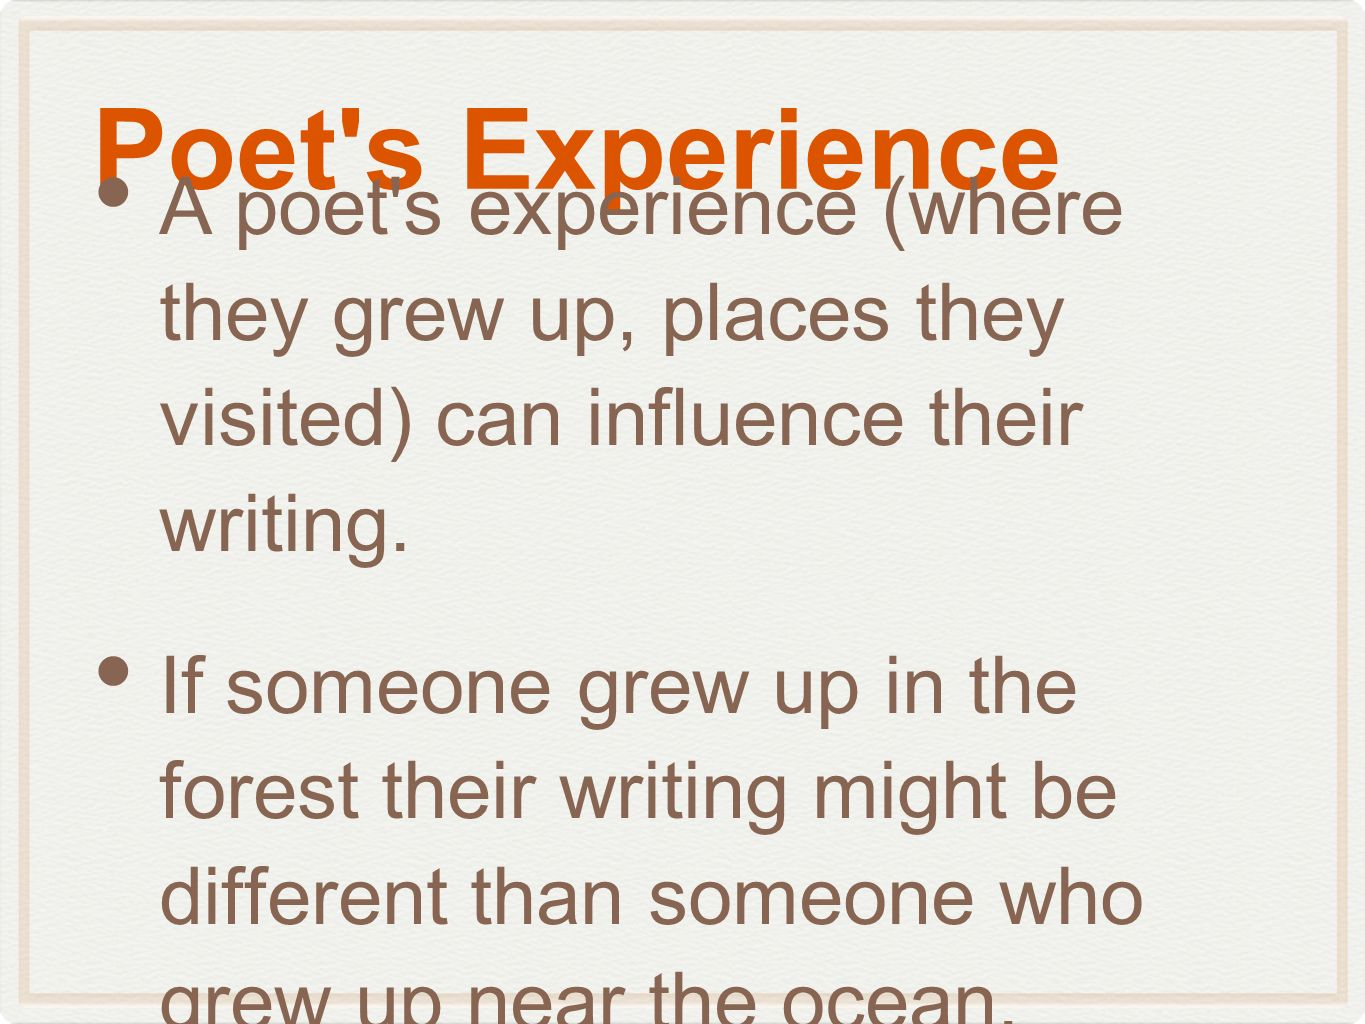 Poet s Experience A poet s experience (where they grew up, places they visited) can influence their writing.